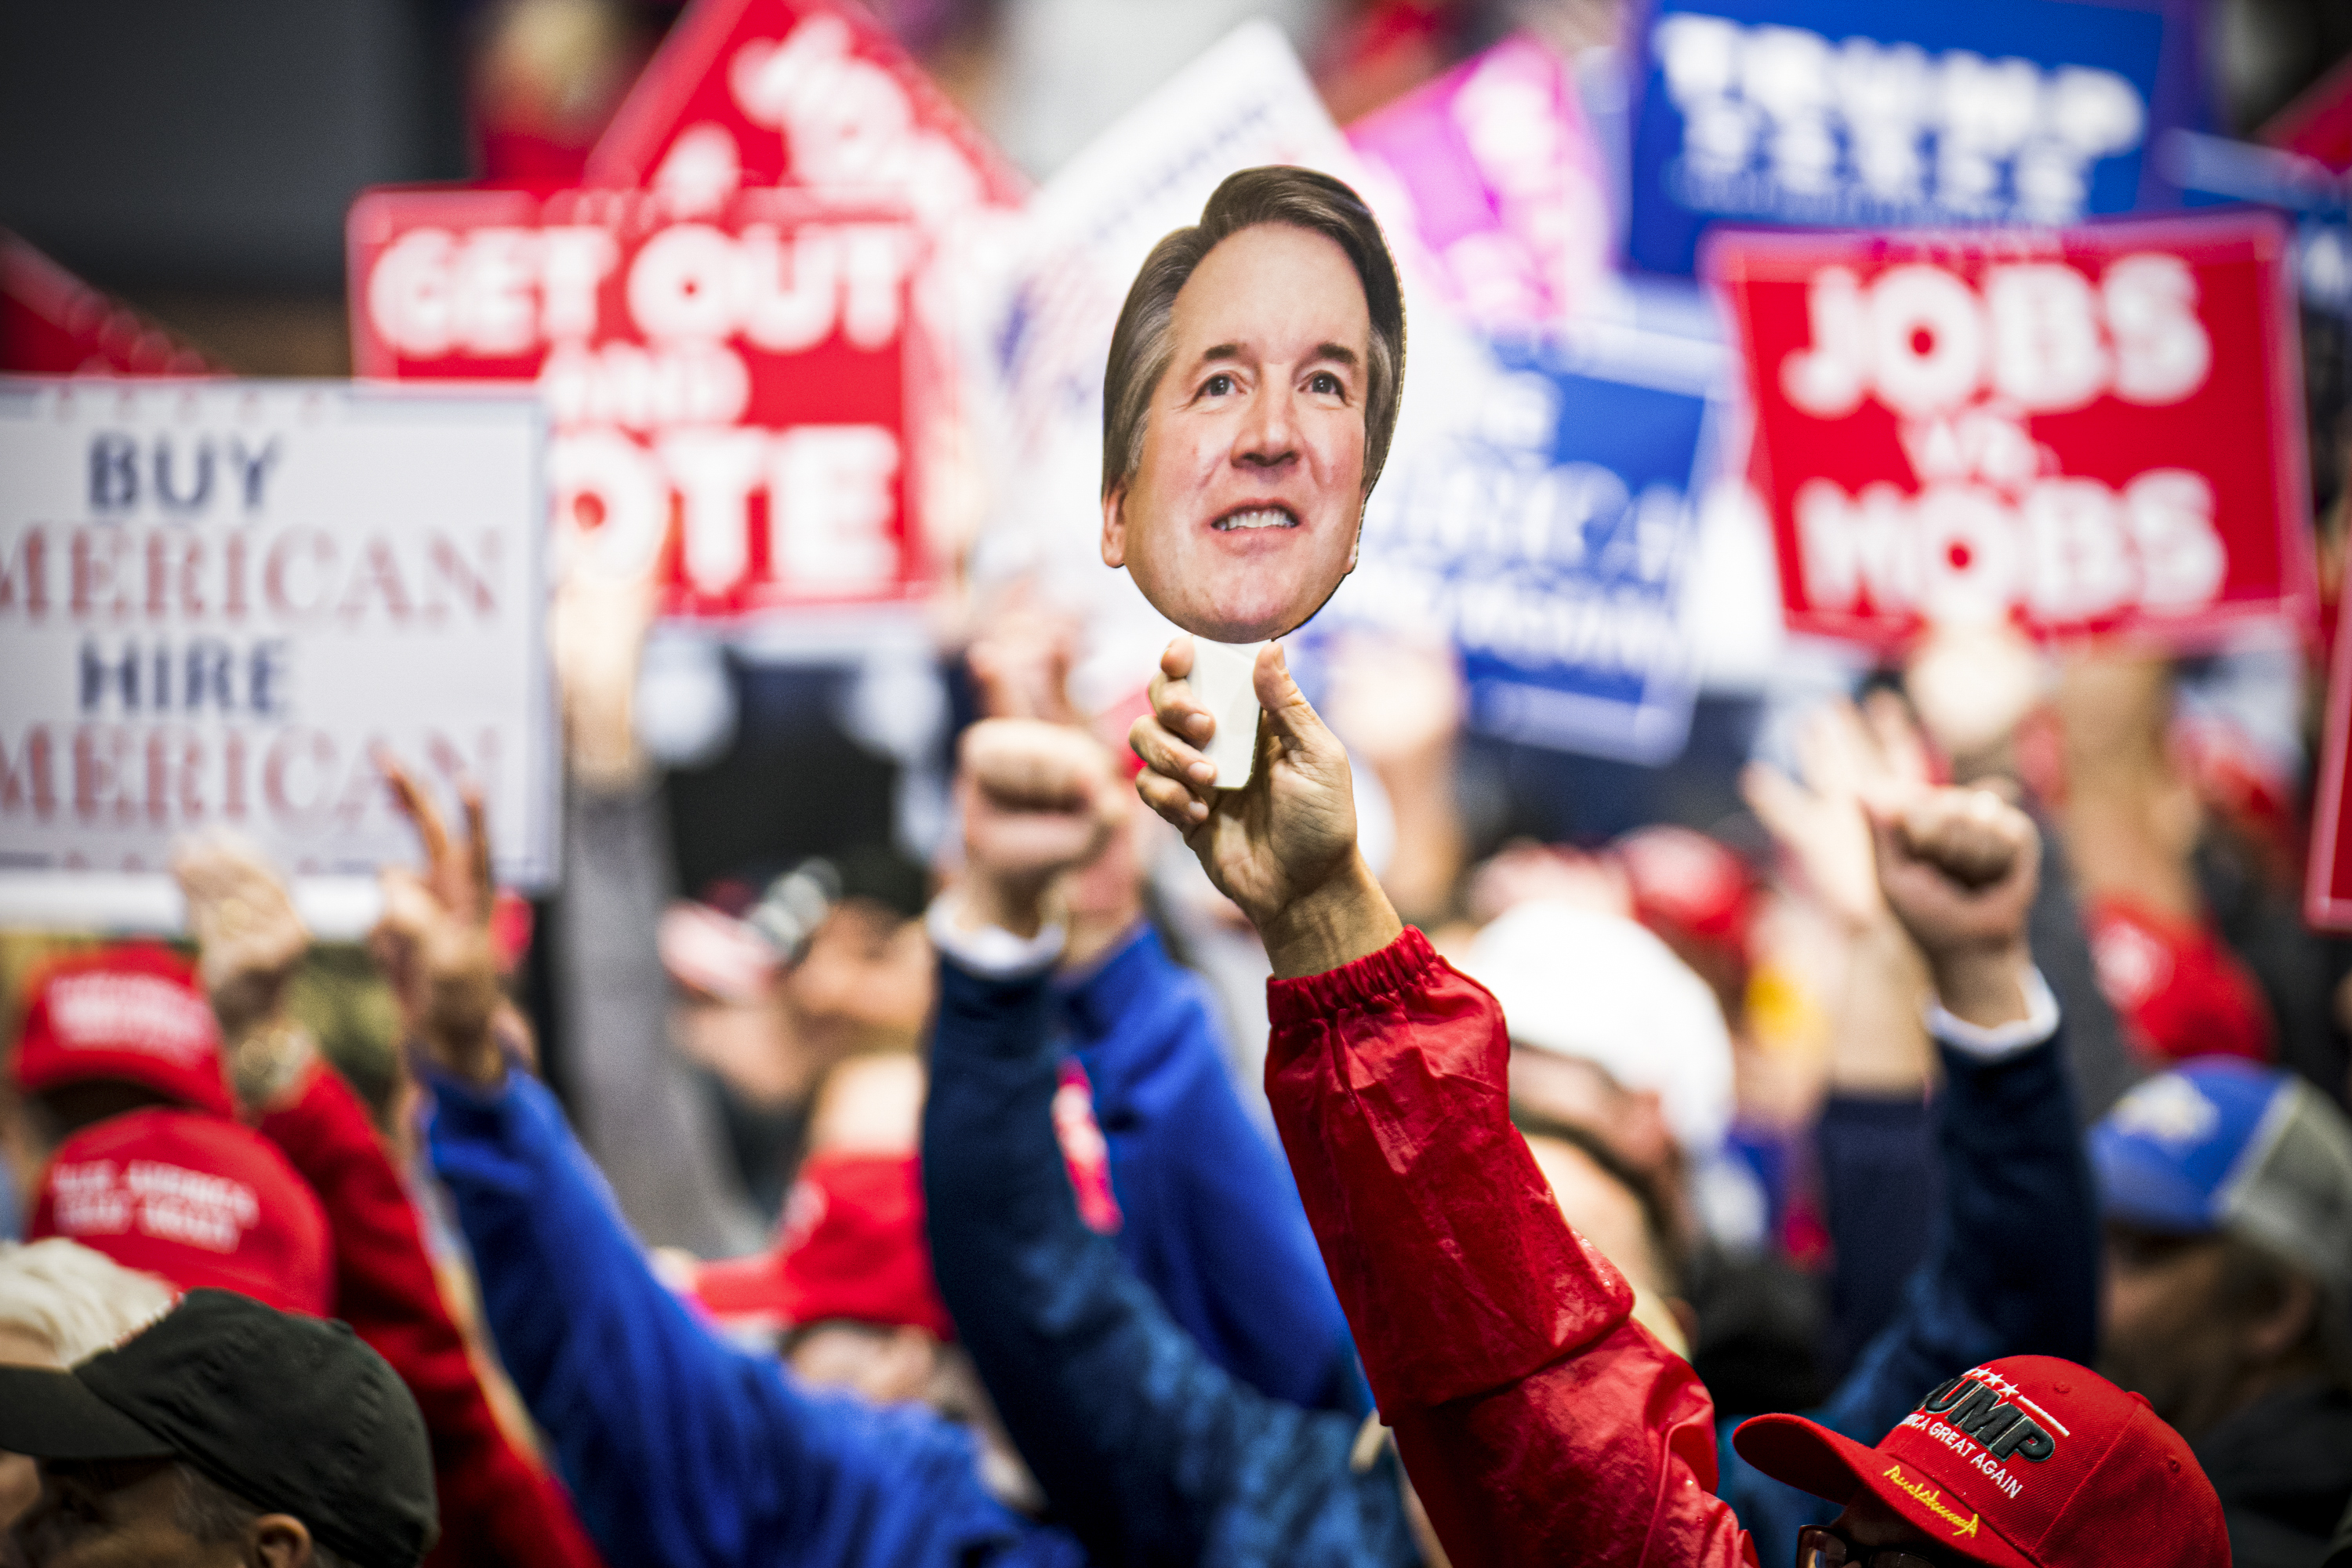 Hands in a rally crowd hold up a picture of Supreme Court Justice Brett Kavanaugh.